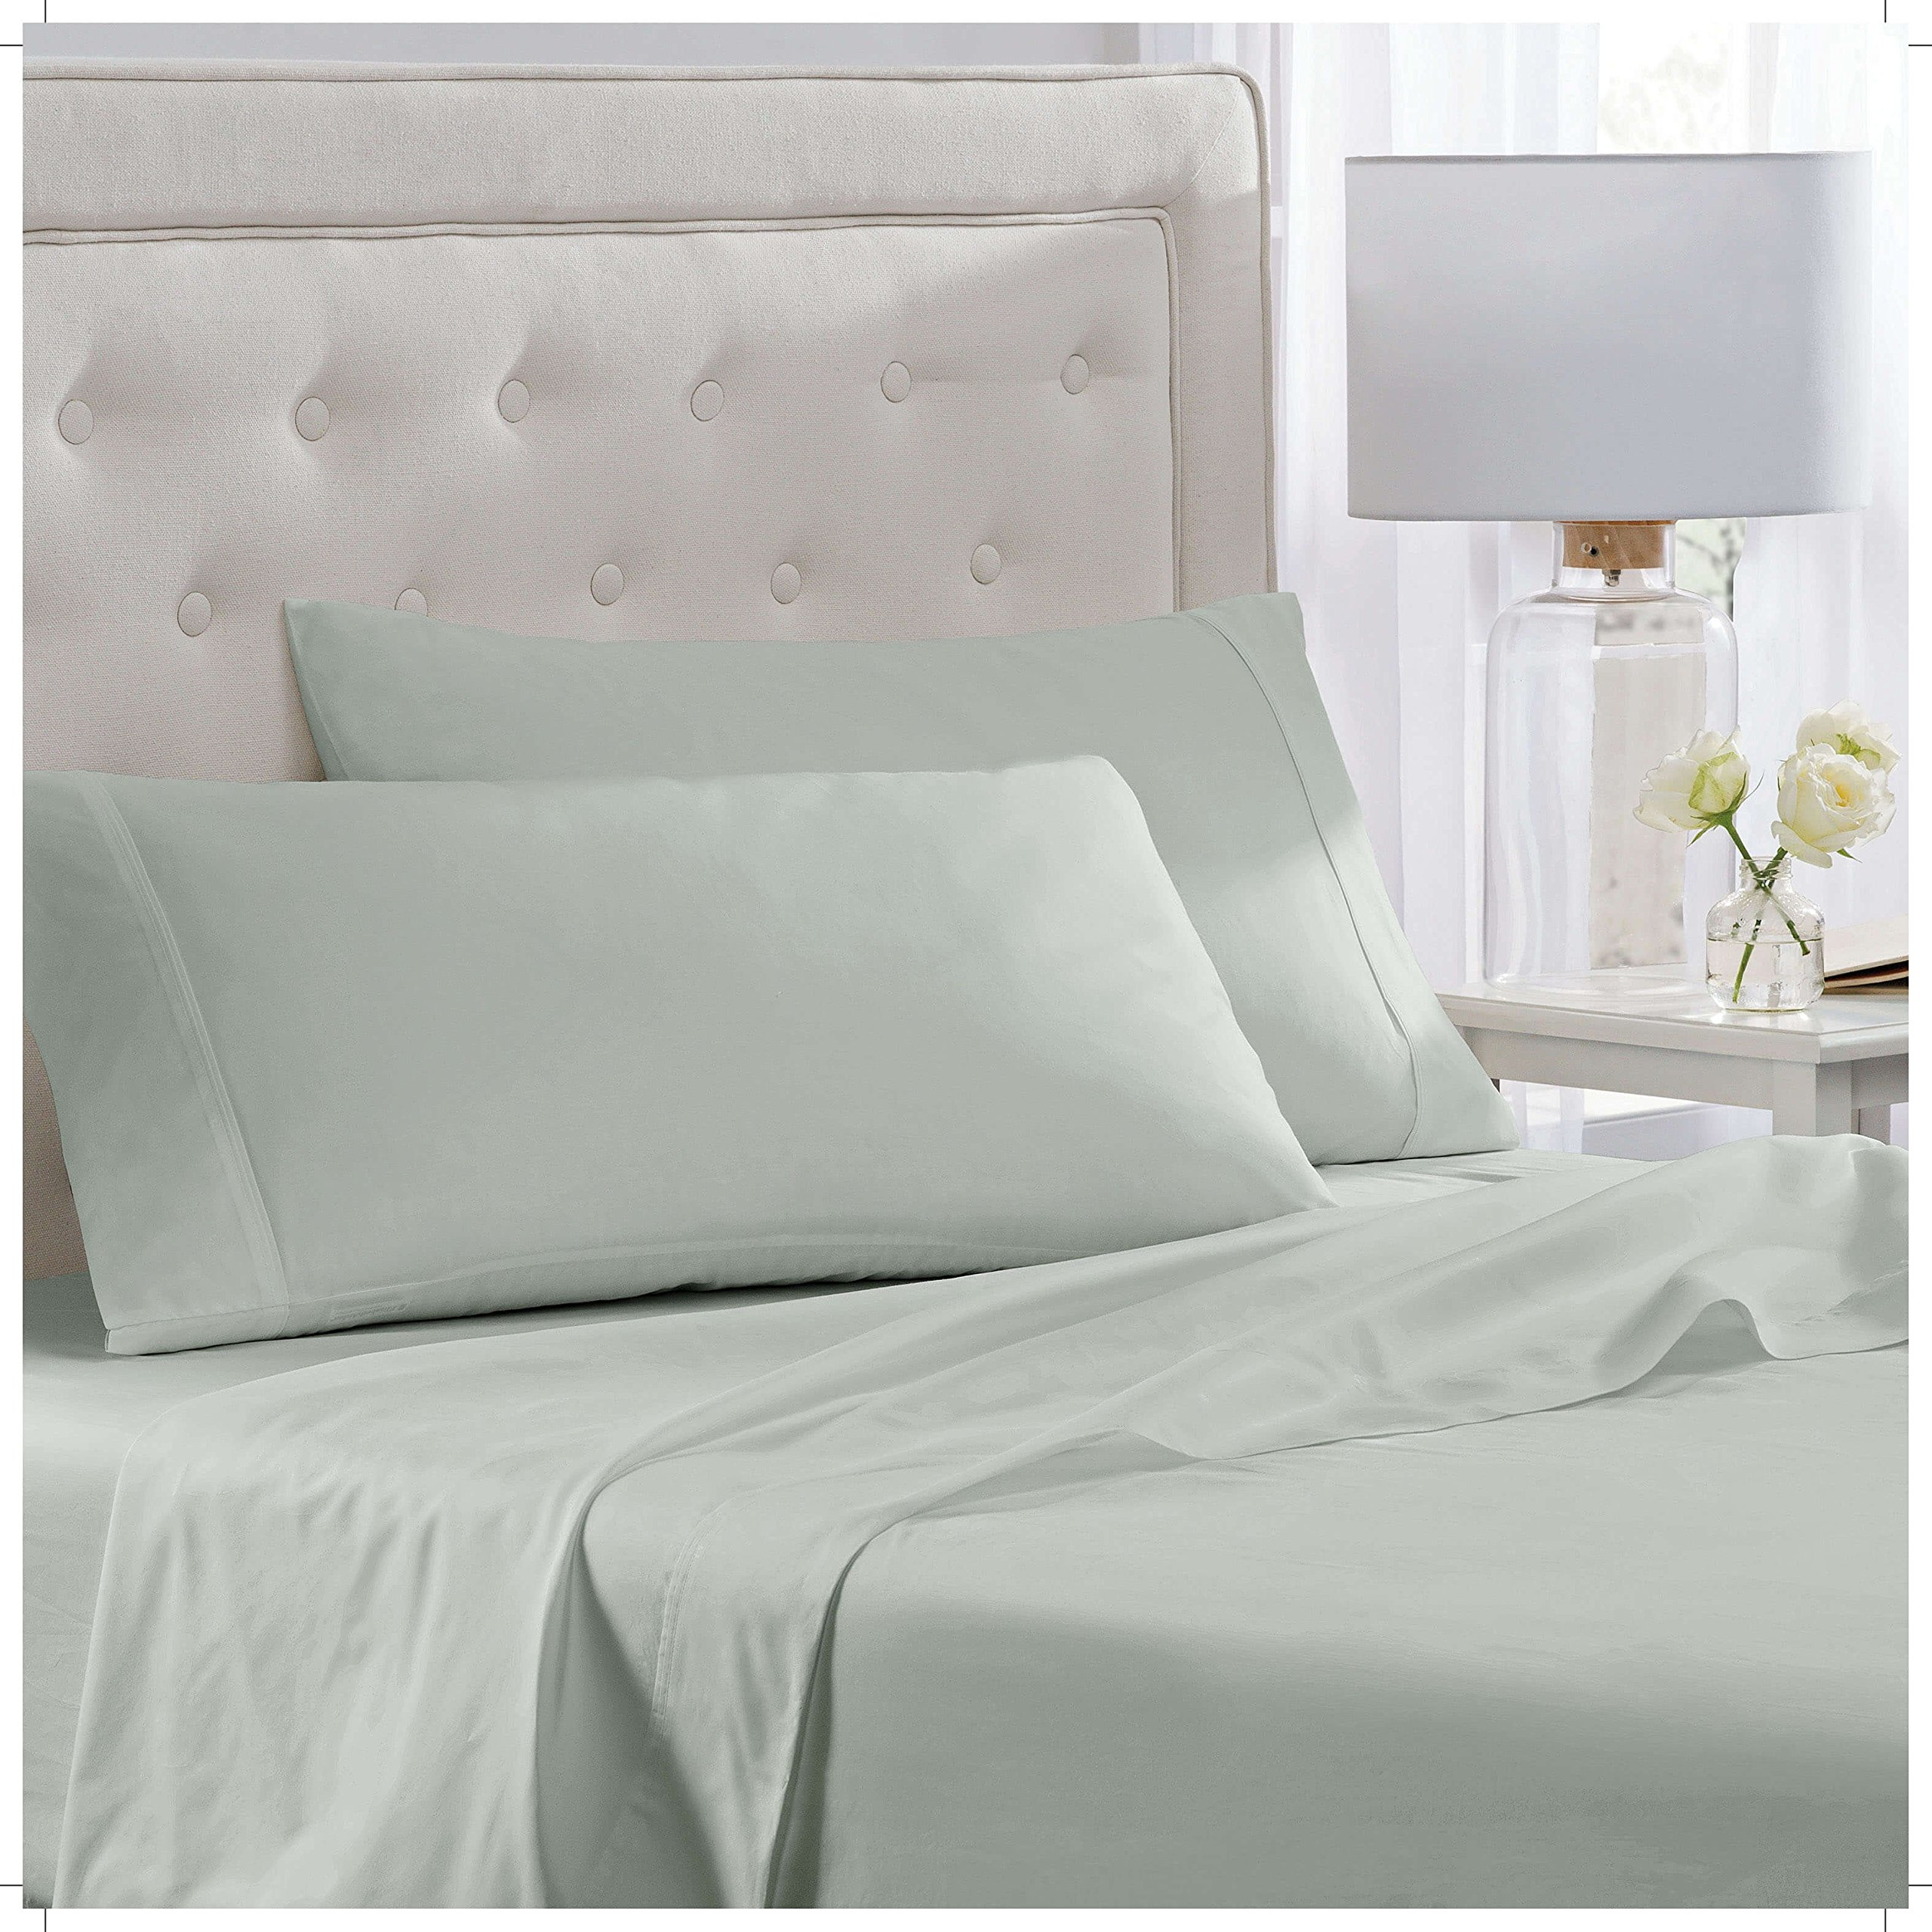 "Elizabeth Arden Light-Weight 100% Long-Staple Cotton Percale 4-Piece Sheet Set - Natural Pure 300 Thread Count – Crisp & Cool – Deep Fitted Pocket Fits Mattress up to 18"" - Full - Sage by Elizabeth Arden THE SPA COLLECTION (Image #3)"